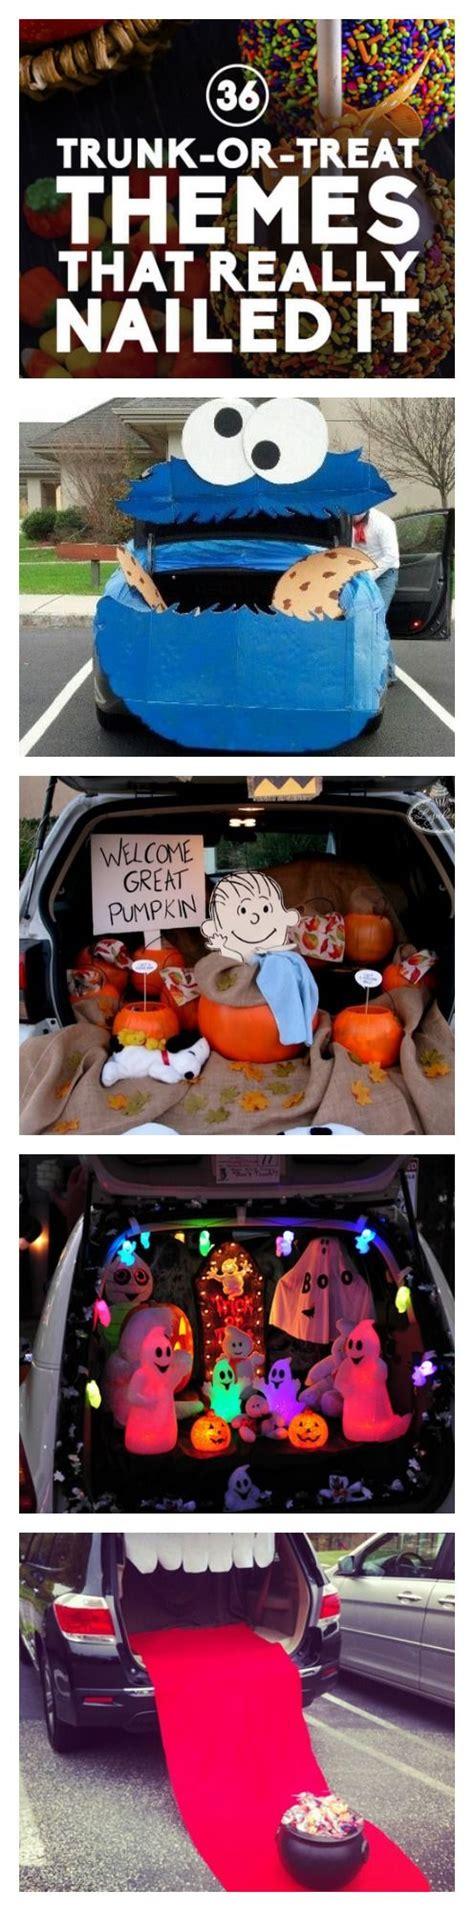 halloween trunk themes trunk or treat trunks and treats on pinterest